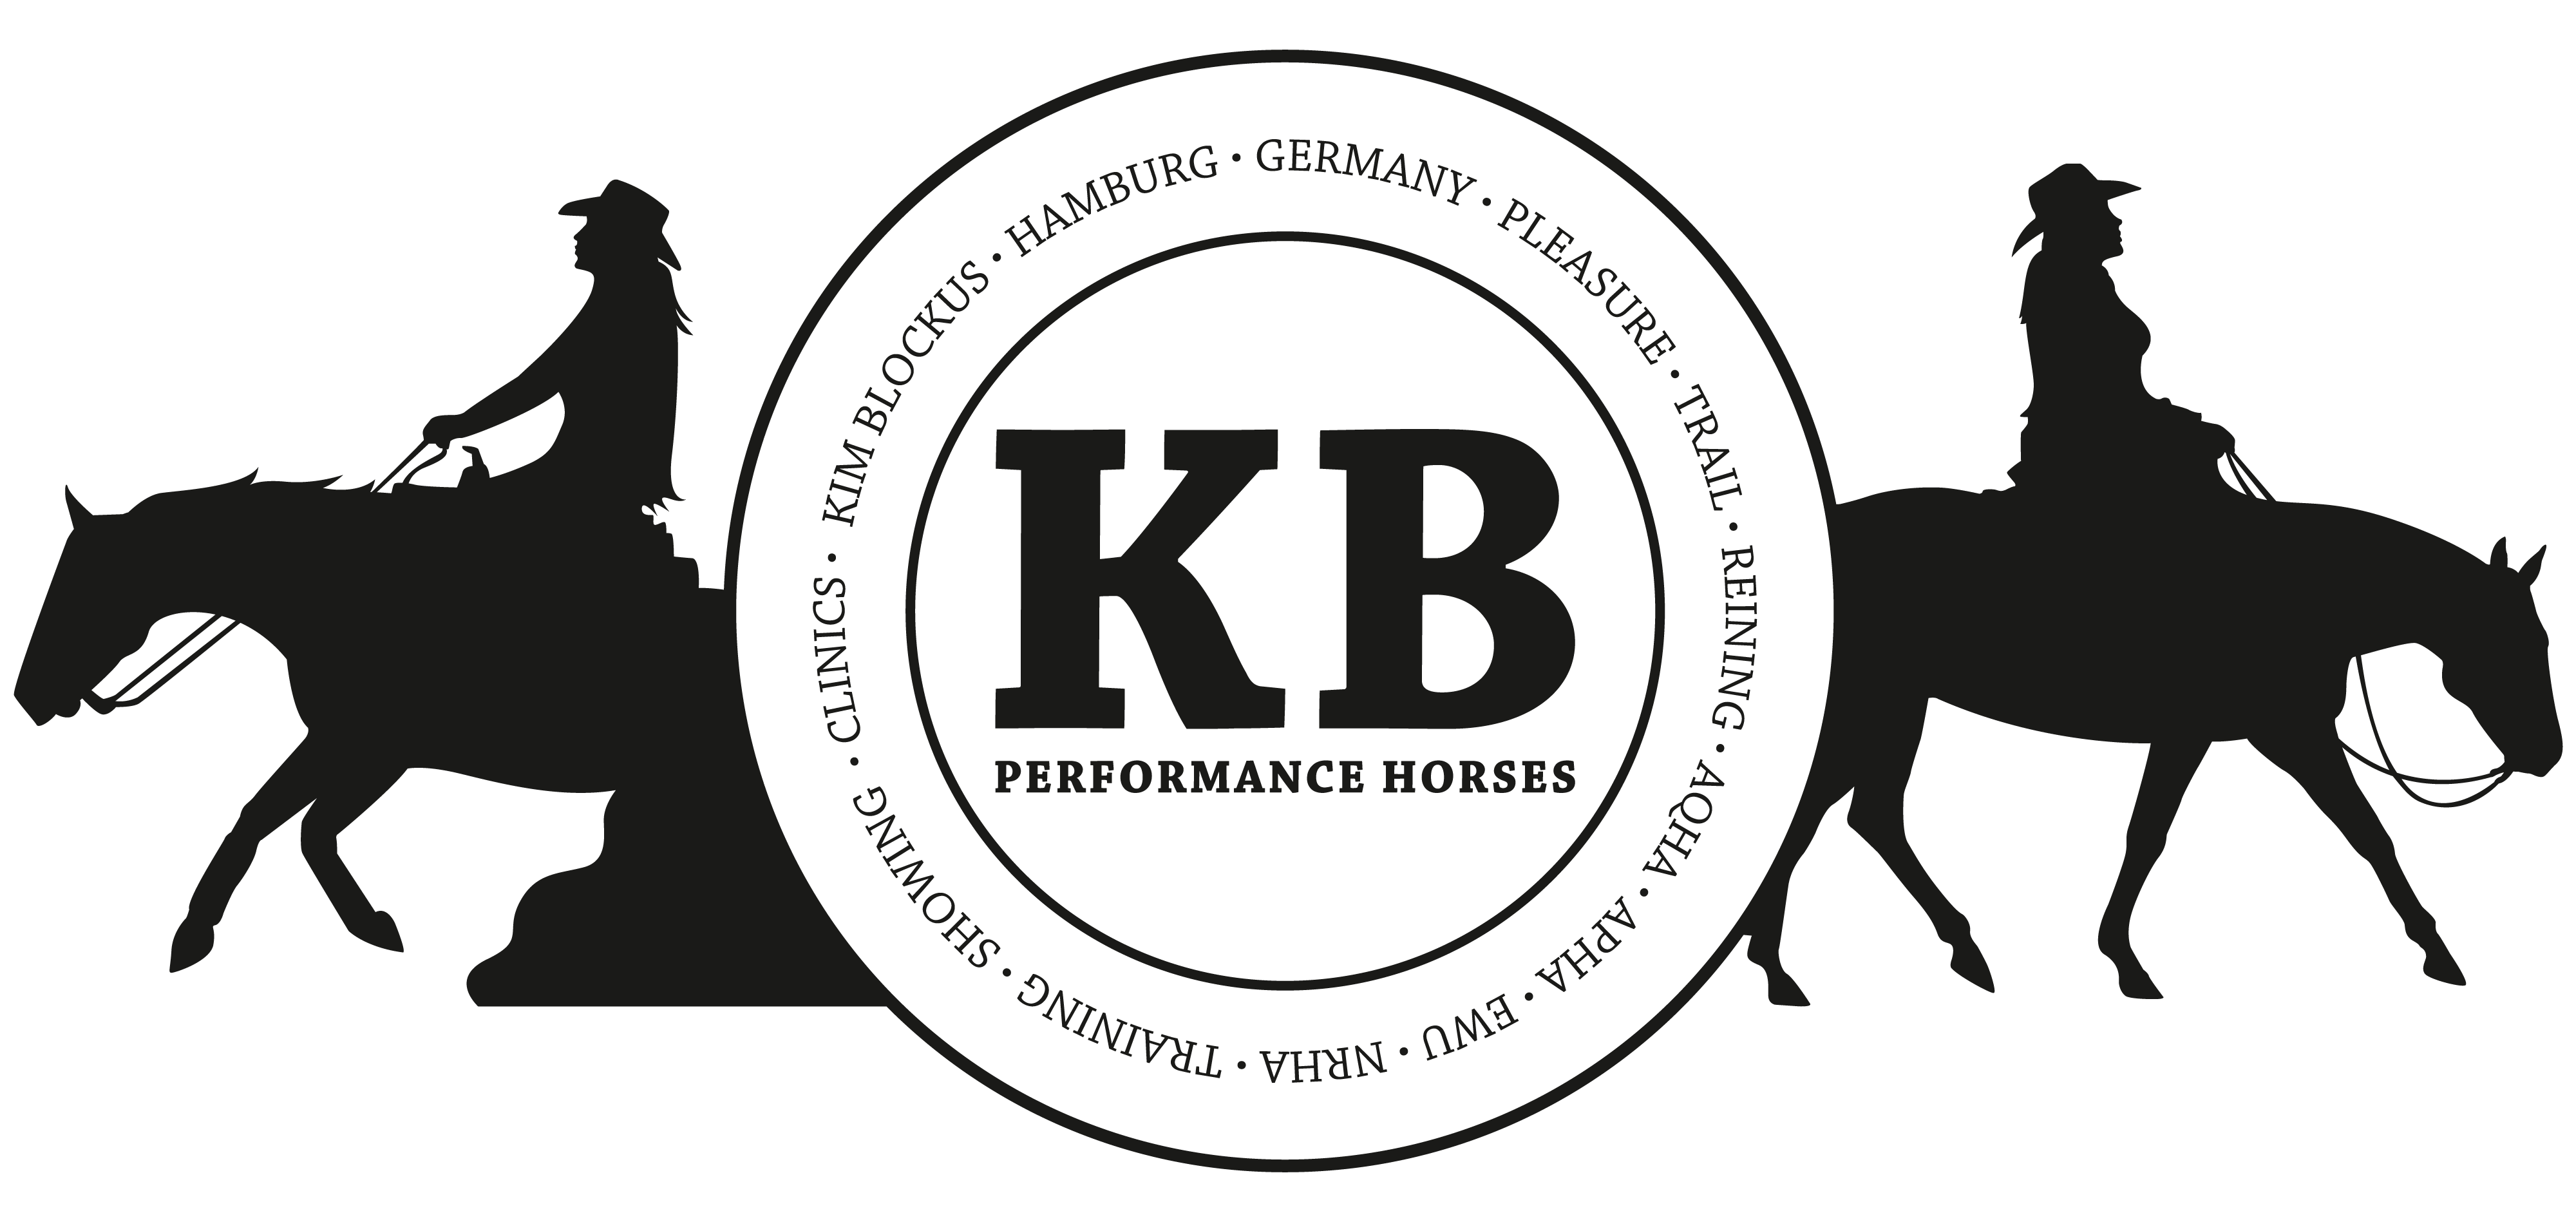 Kim Blockus Performance Horses